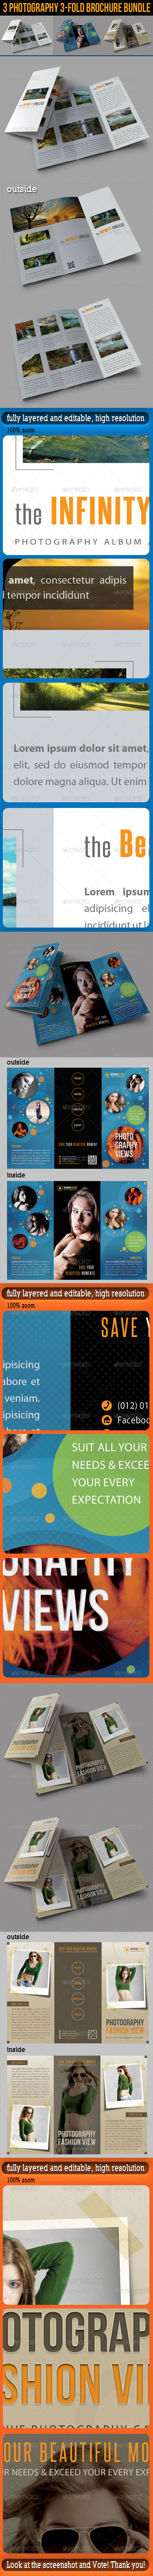 GraphicRiver 3 in 1 Photography 3-Fold Brochure Bundle 01 6625624